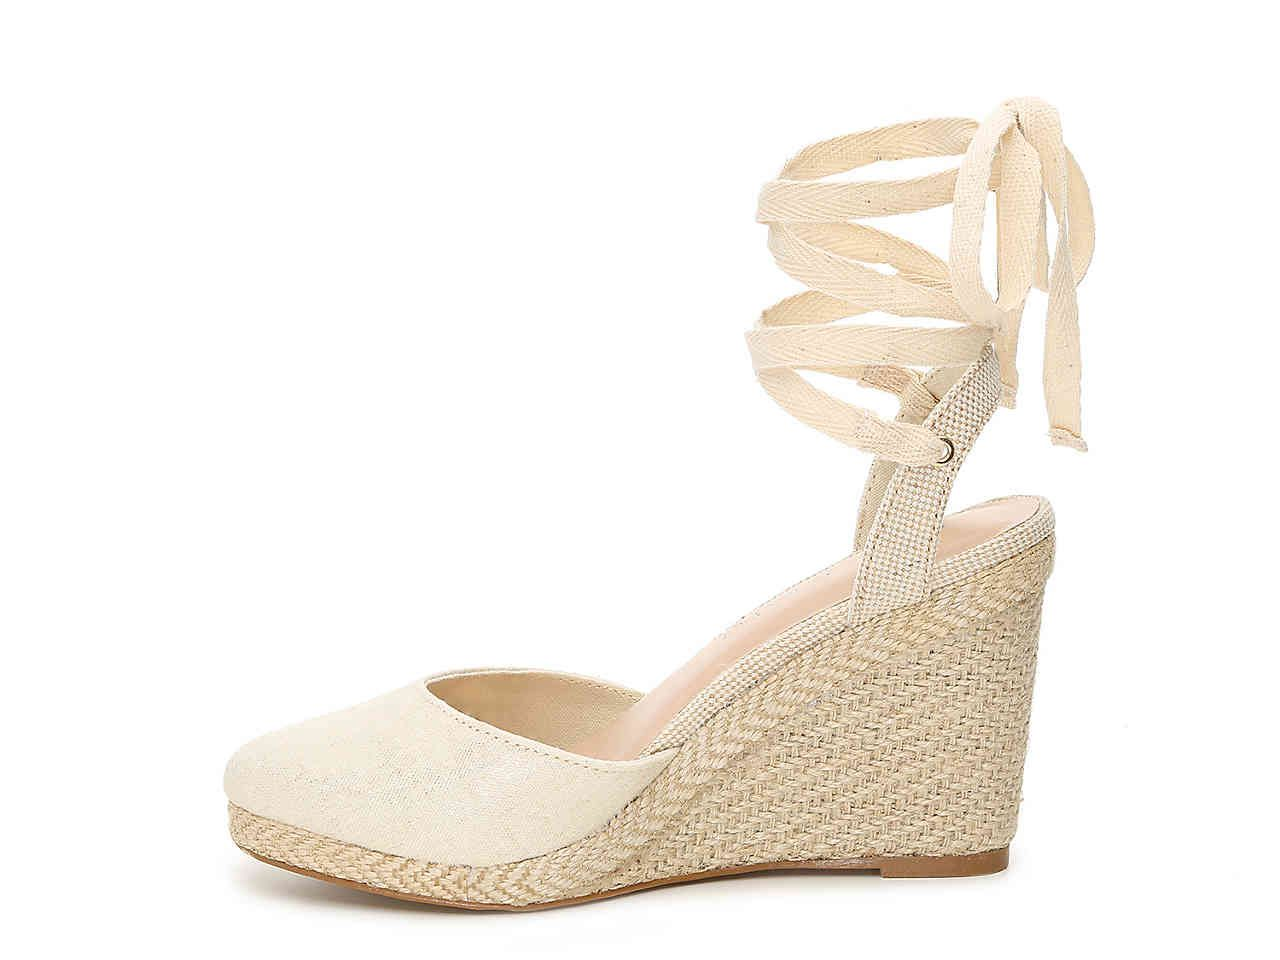 99f46c845802 Kelly   Katie Hanah Wedge Sandal Women s Shoes